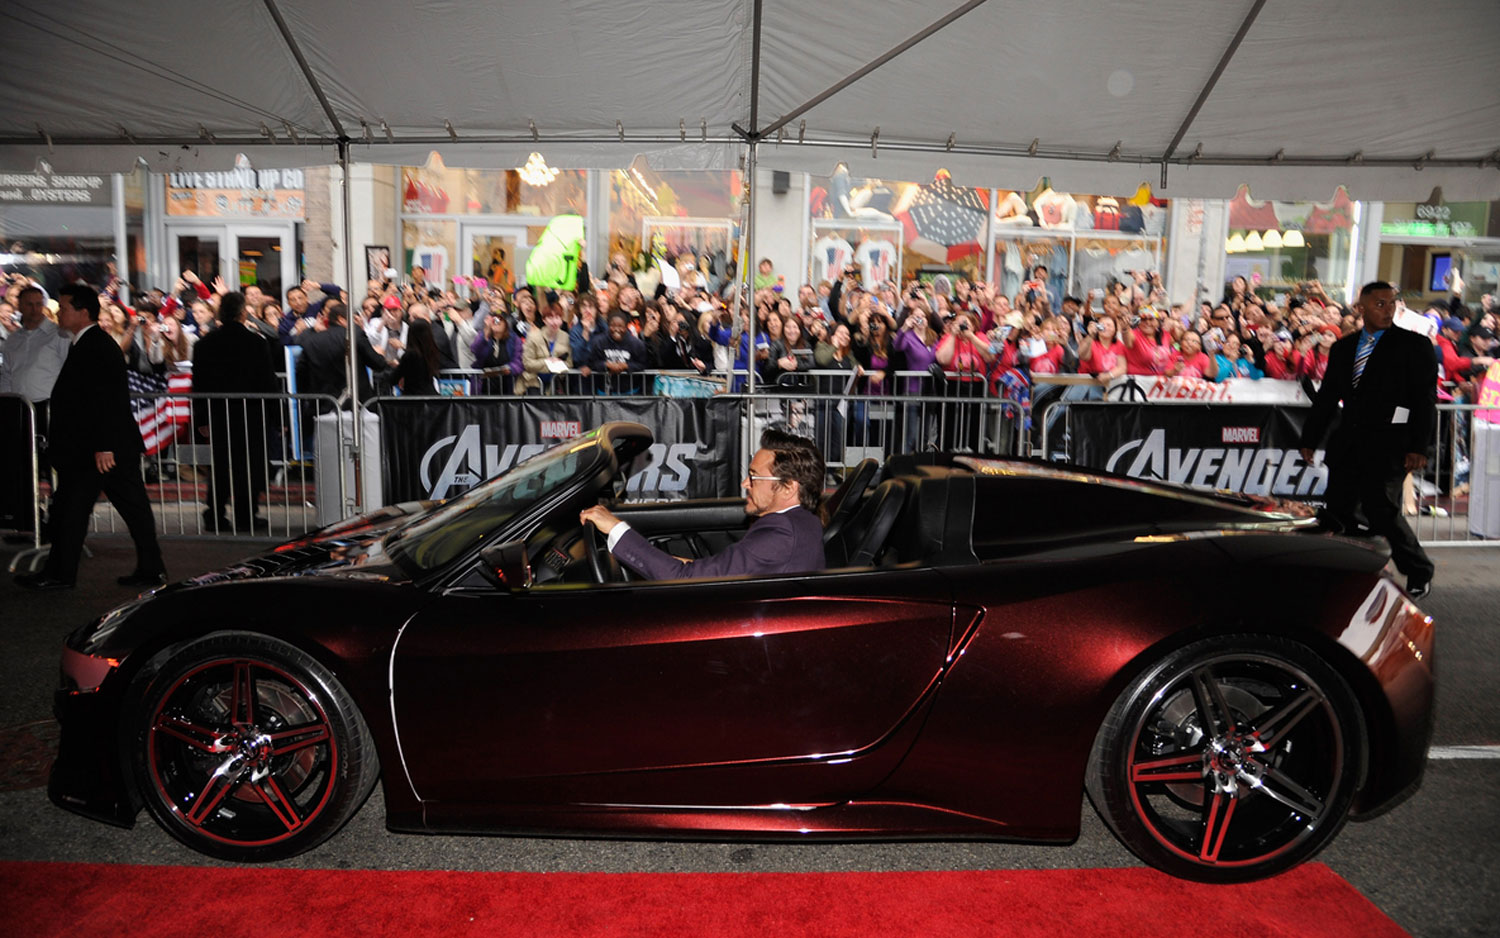 U0027The Avengersu0027 Premiere Features Acura NSX Like Convertible On Red Carpet